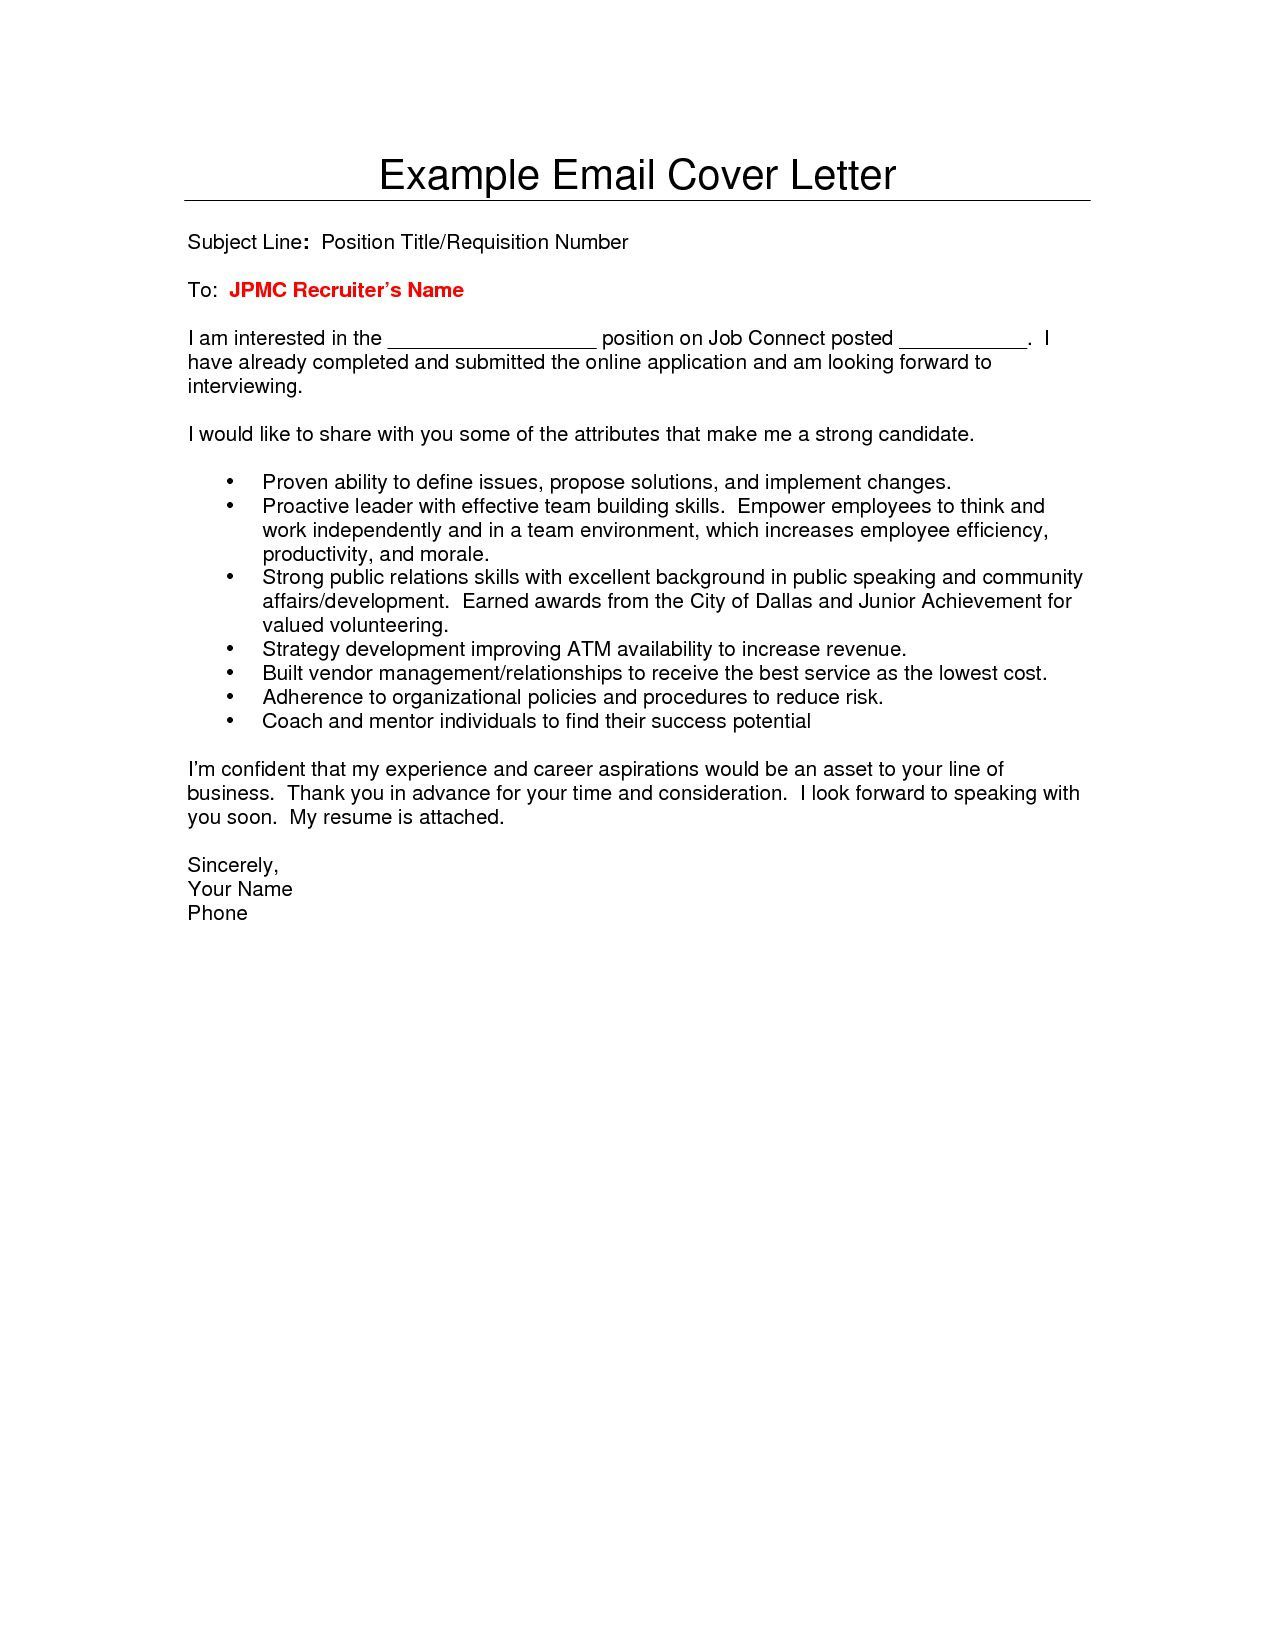 007 Impressive Email Cover Letter Example For Resume Picture  Sample Through AttachedFull